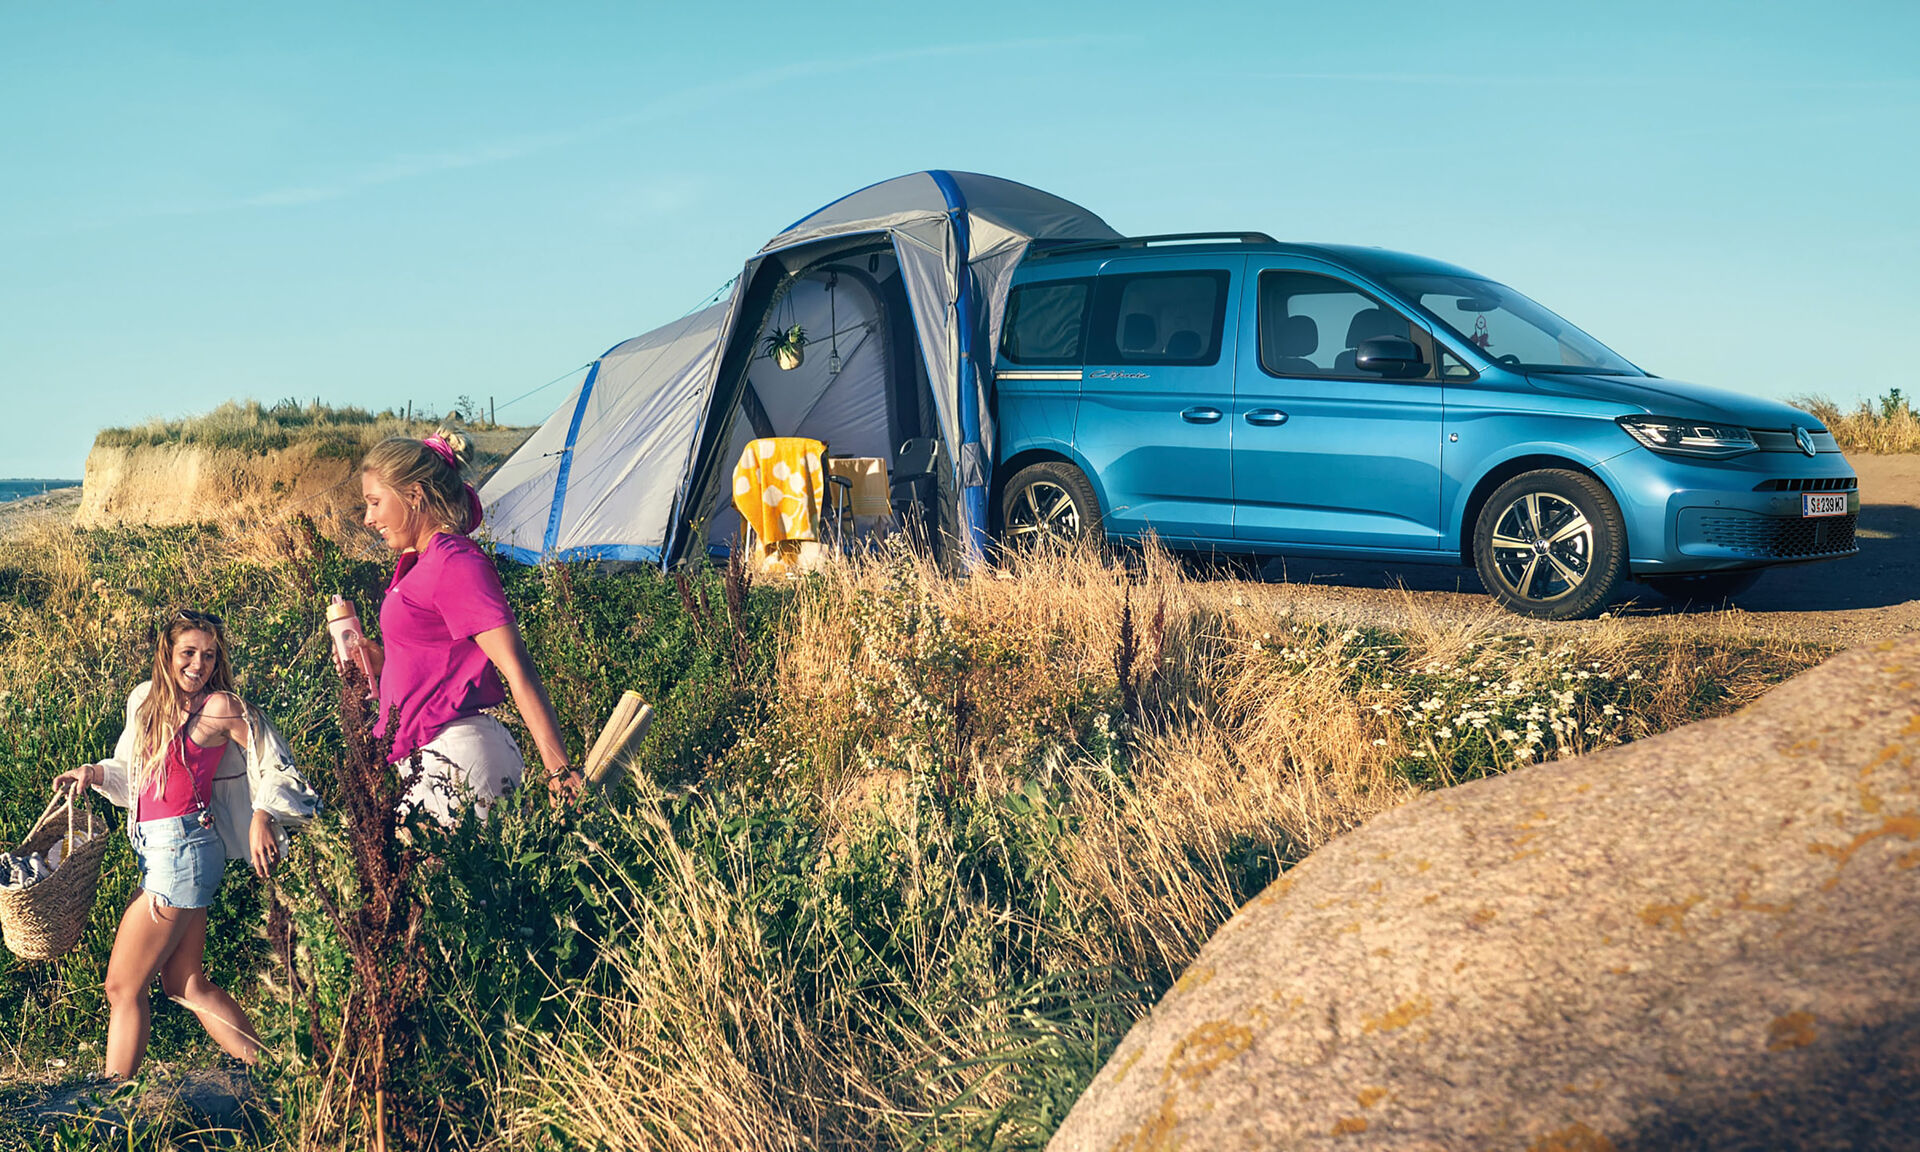 Blauer VW Caddy California mit Zelt am Heck